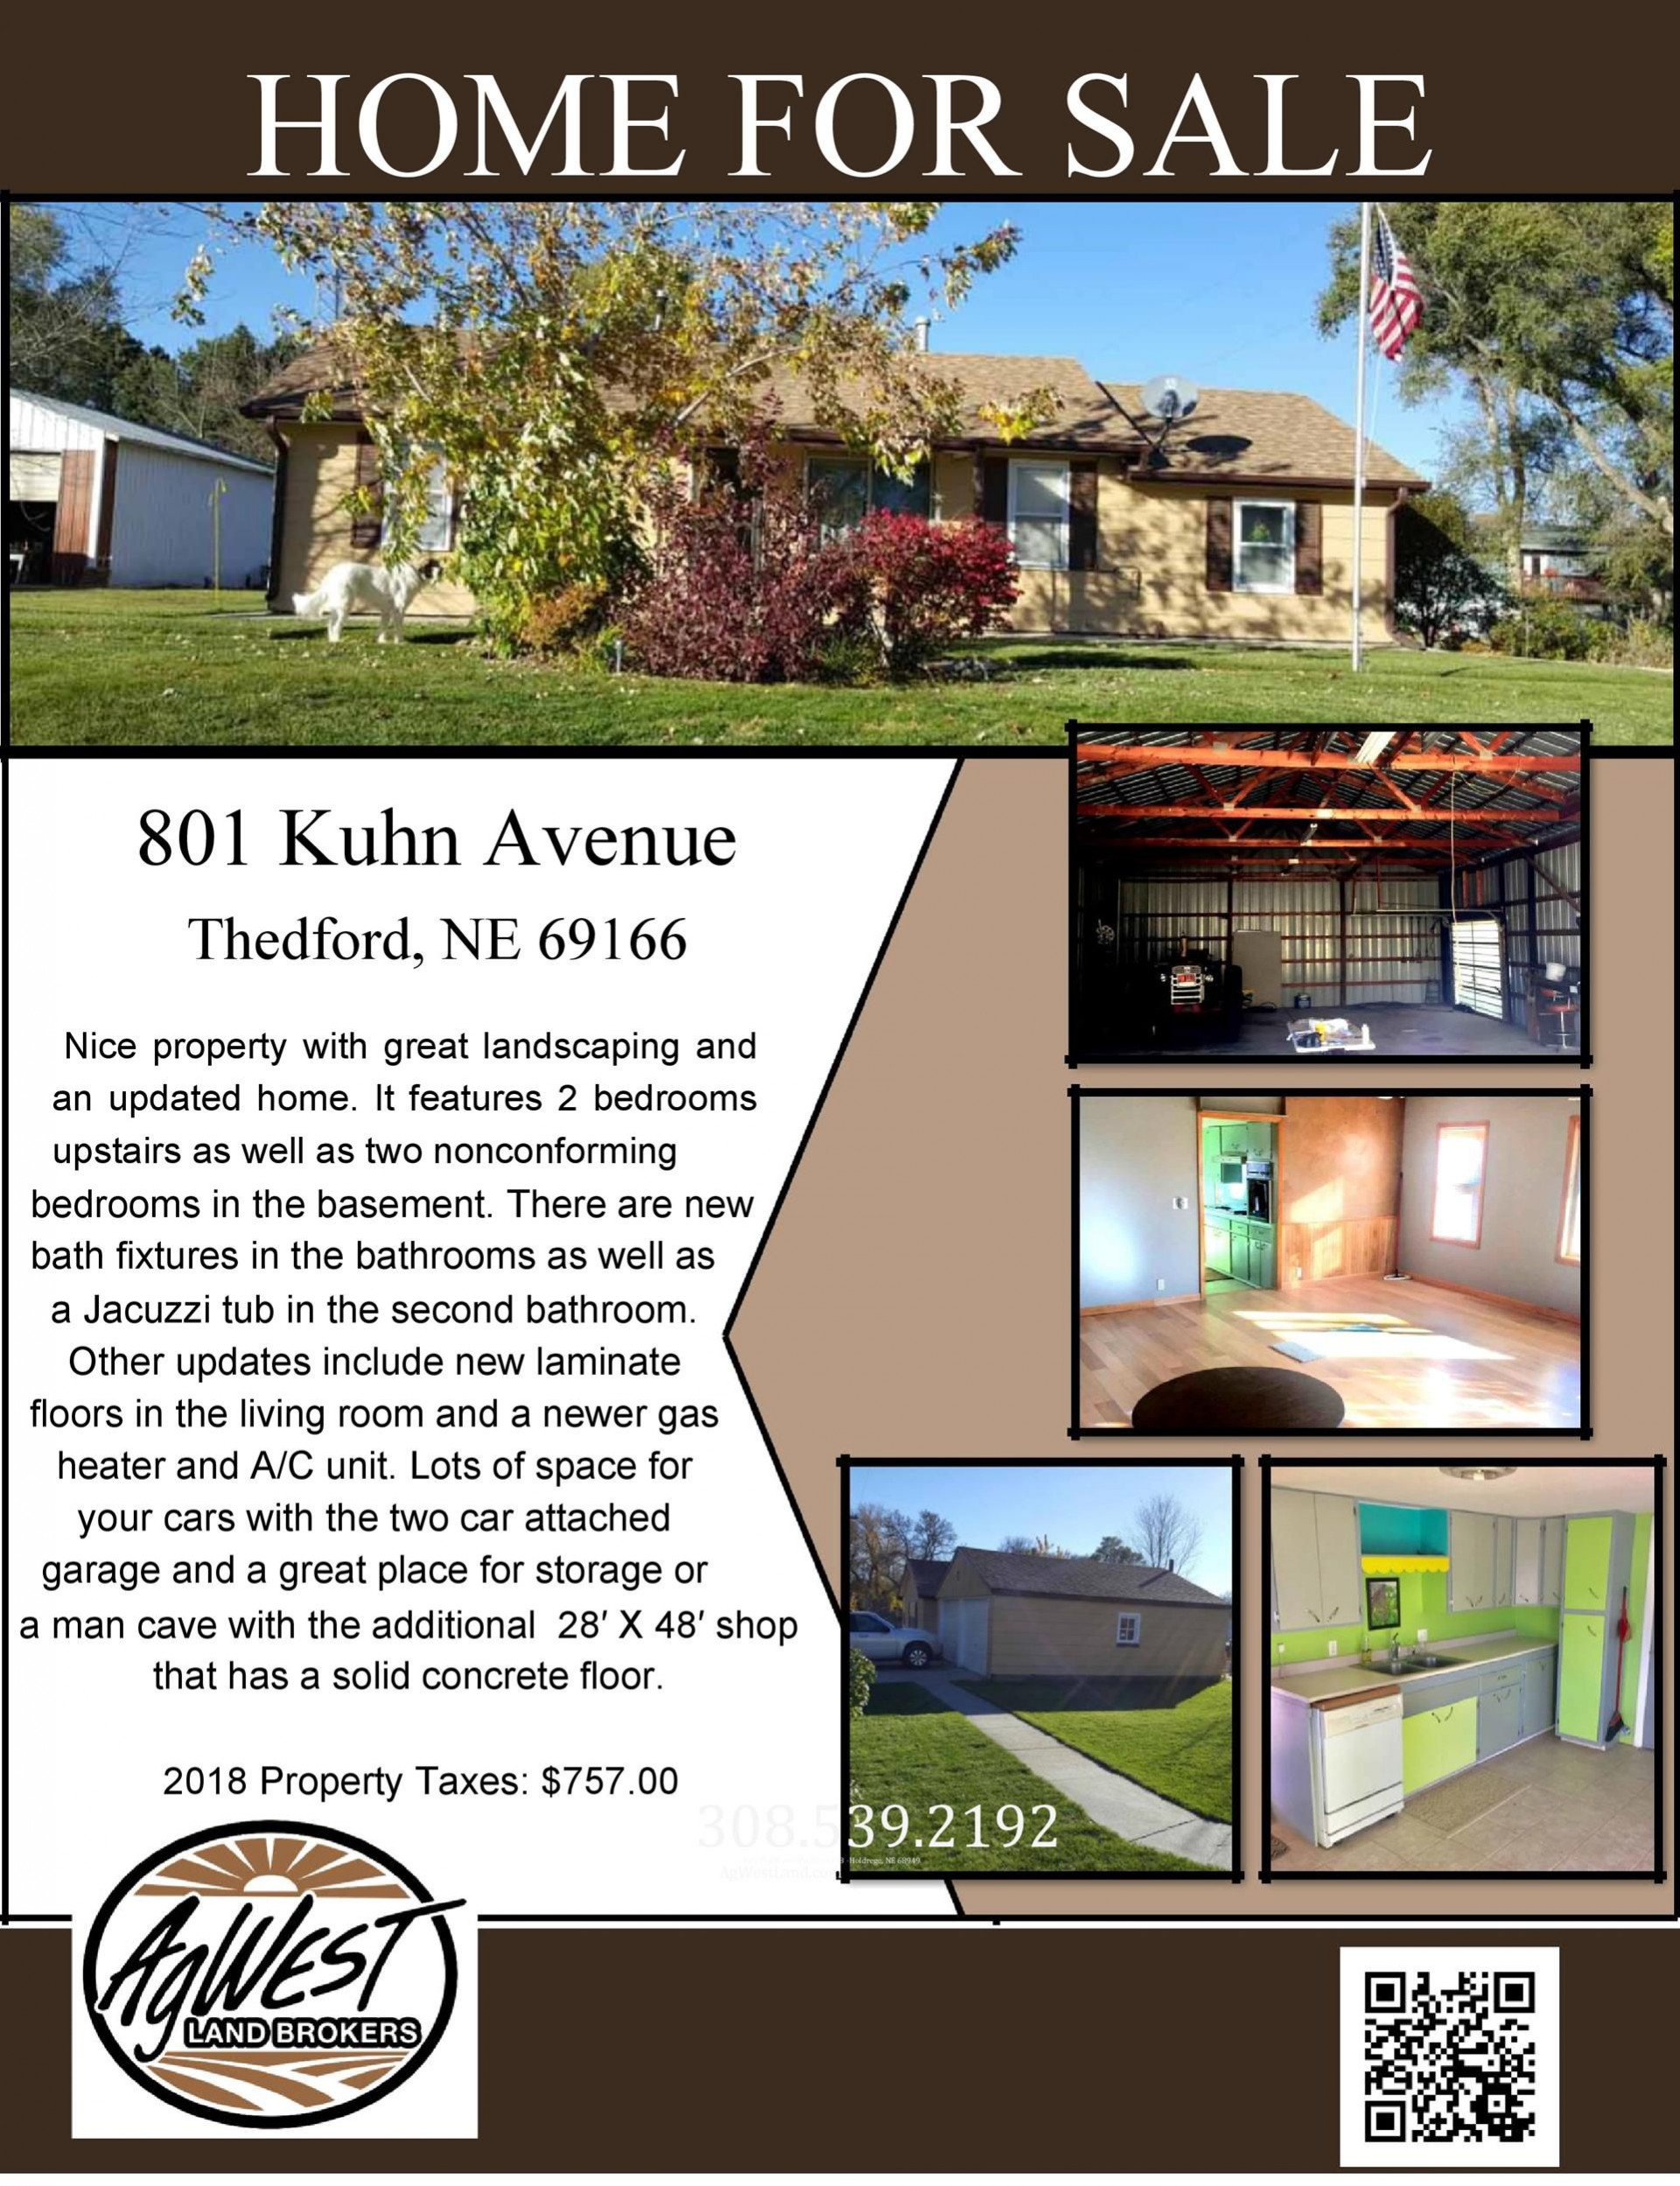 004 Striking House For Sale Flyer Template Sample  Free Real Estate Example By Owner1920